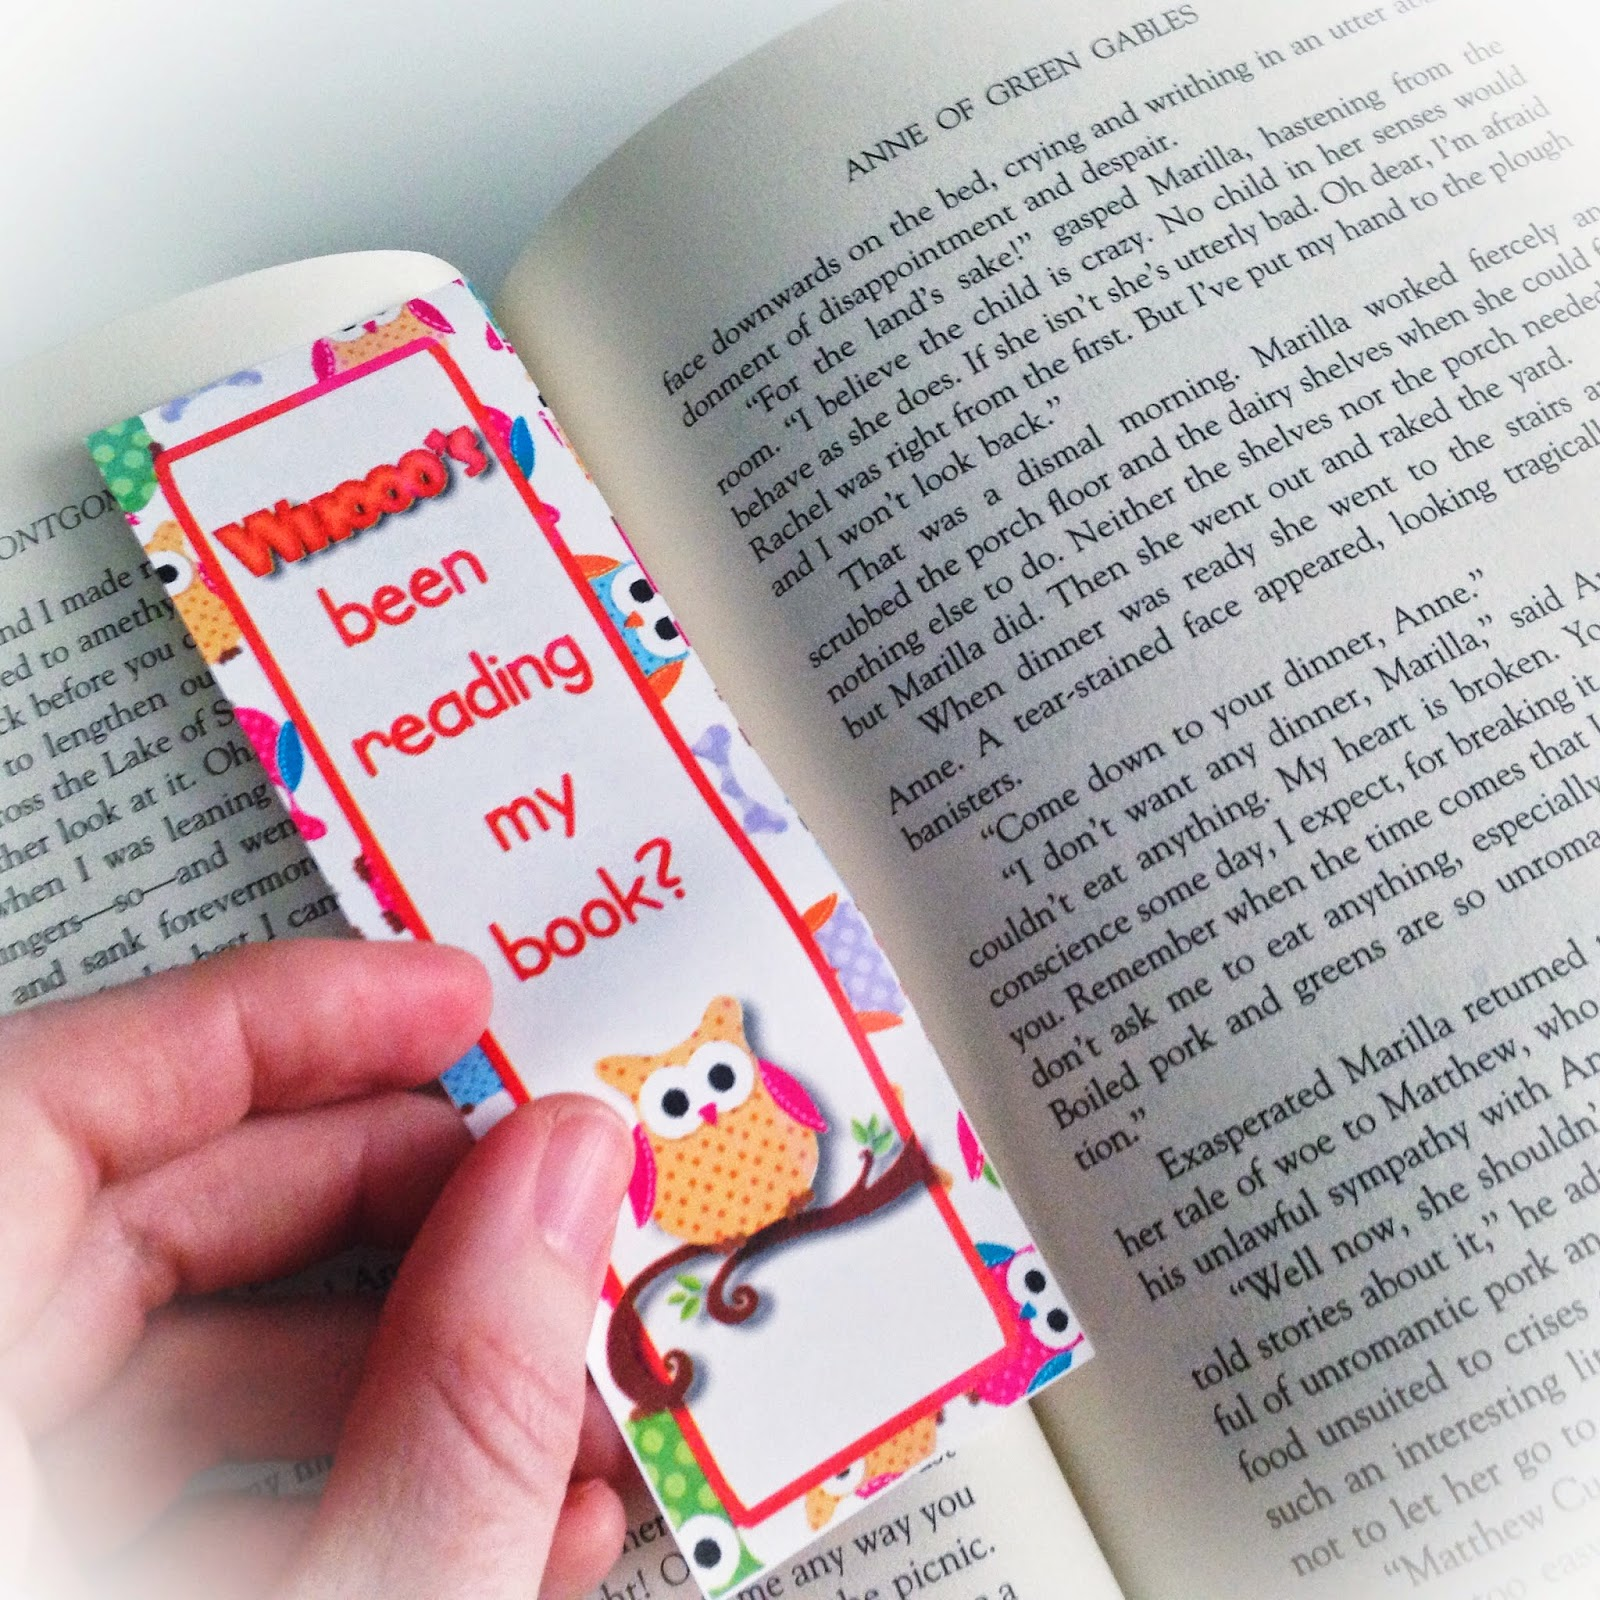 http://www.teacherspayteachers.com/Product/Owl-Themed-Reading-Bookmarks-FREE-256040